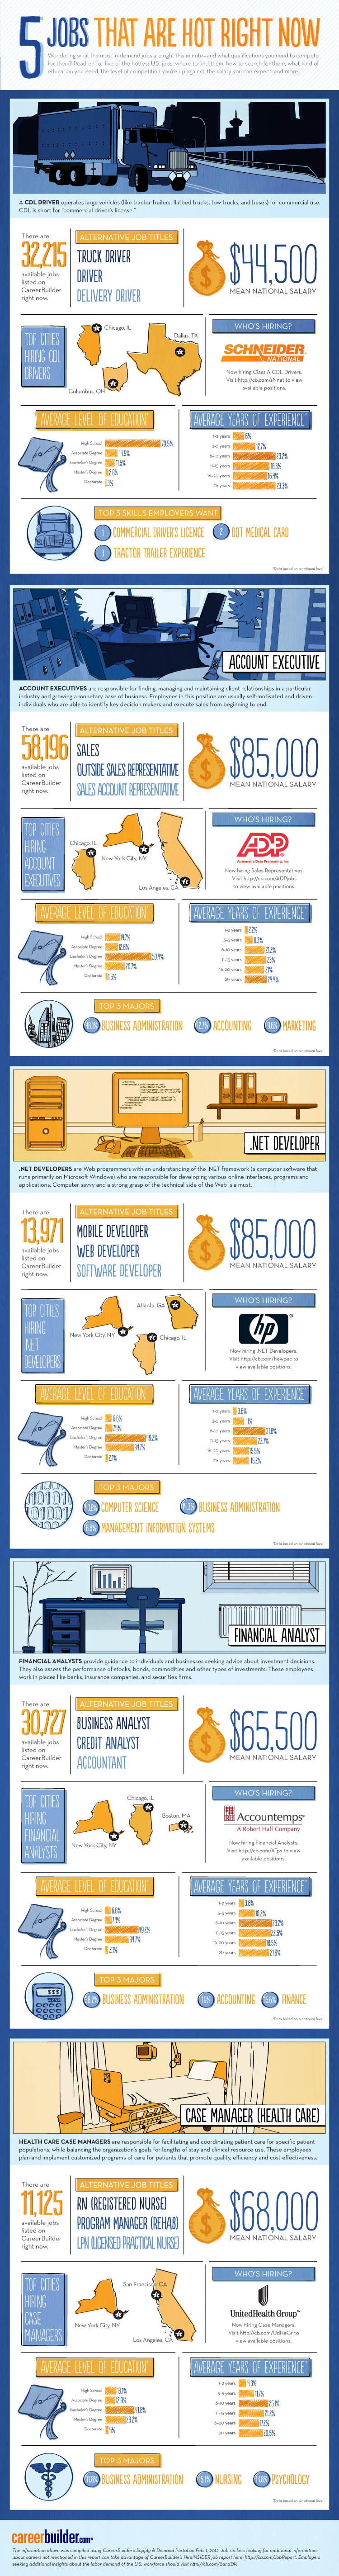 2012 study on in demand jobs